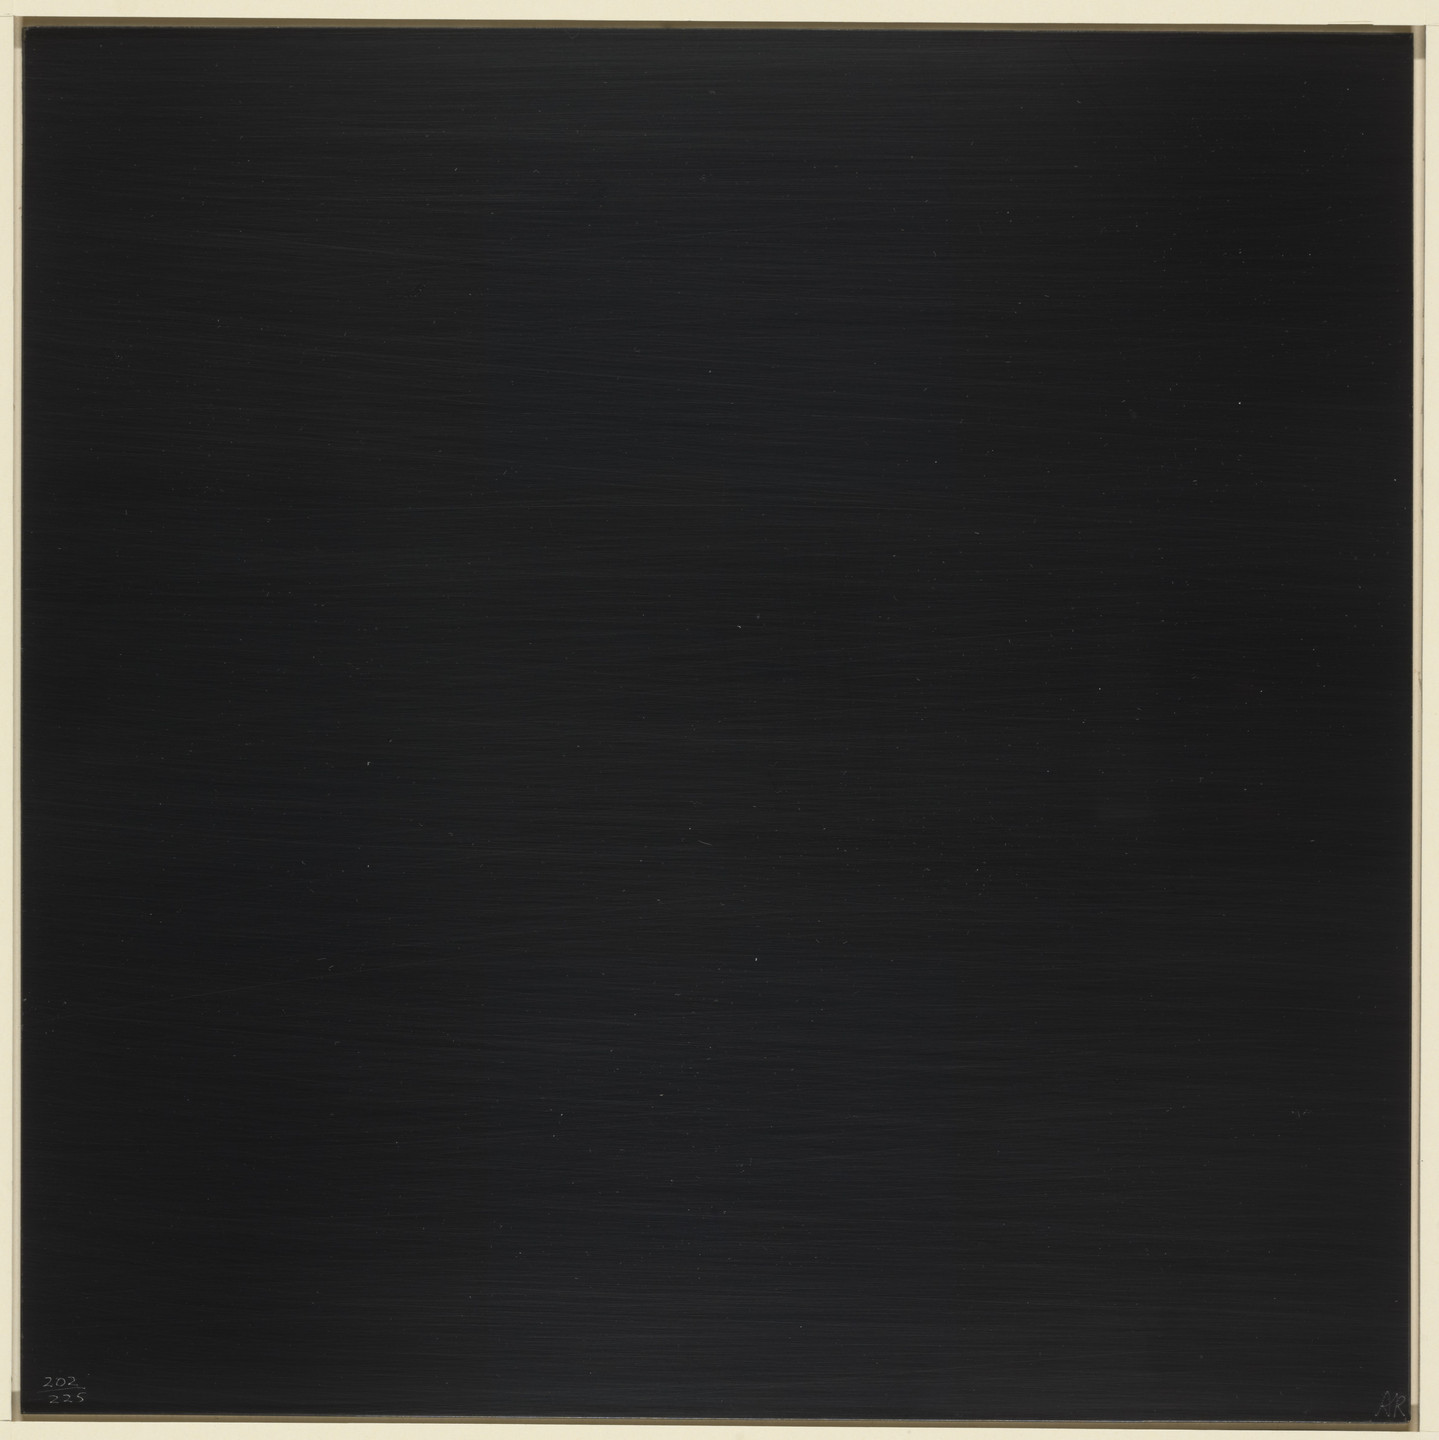 Ad Reinhardt. Abstract Print from New York International. 1966